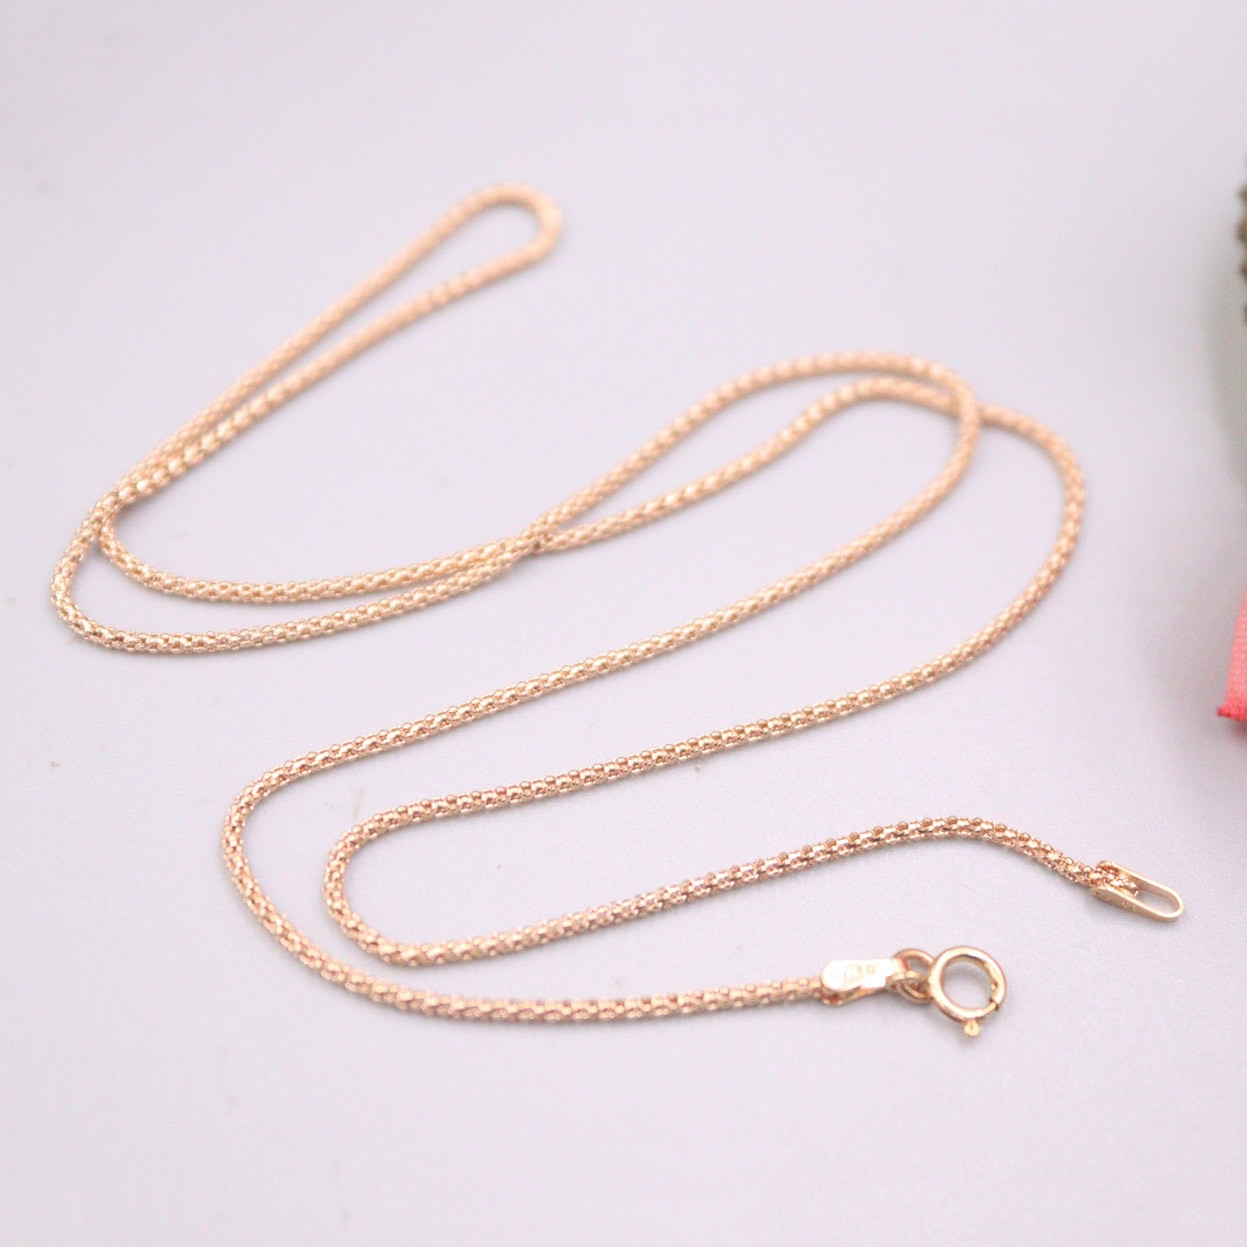 Real 18K Rose Gold Chain For Women Female 1.1mm Small Thin Popcorn Gold Chain Necklace 45cm Length Au750